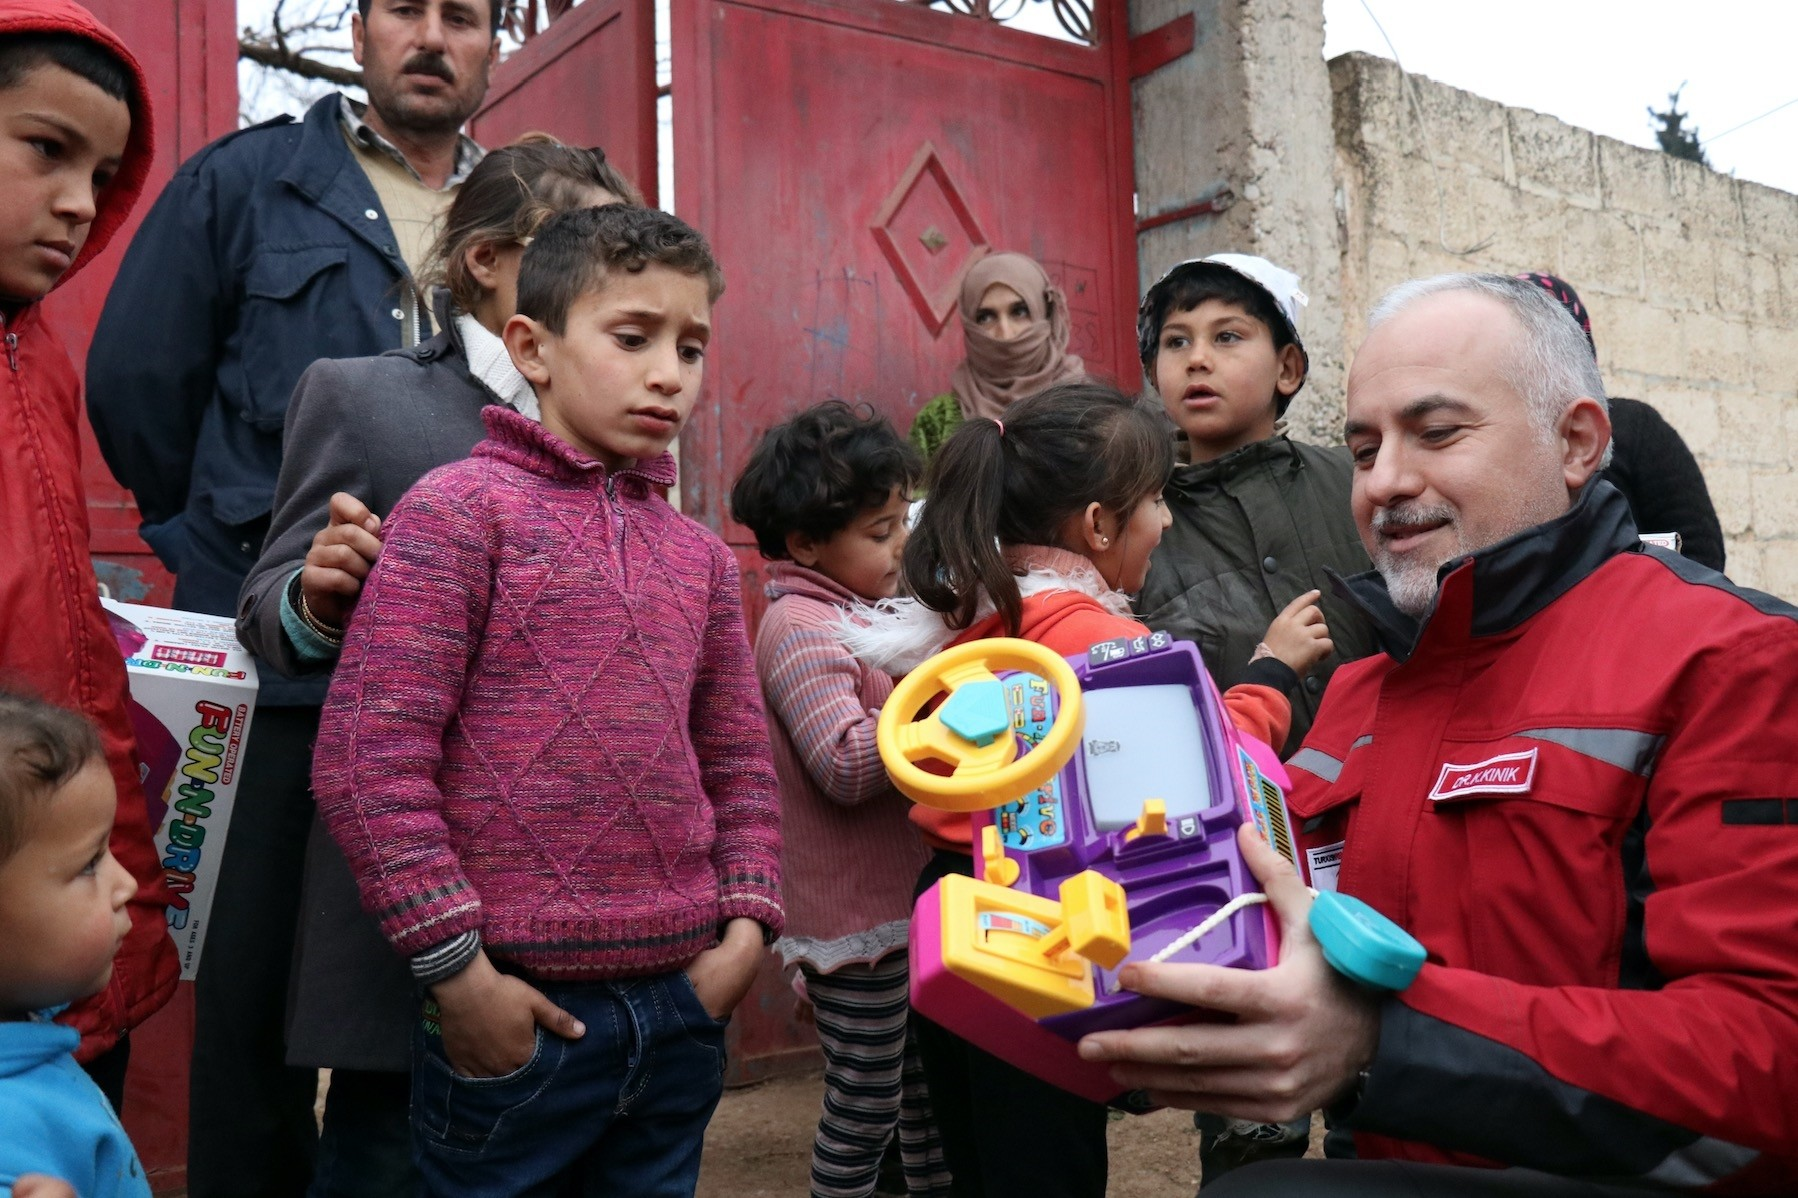 Turkeyu2019s Red Crescent President Dr. Kerem Ku0131nu0131k delivers toys to children in Deir Ballut in Jinderes, Afrin, Feb. 17.